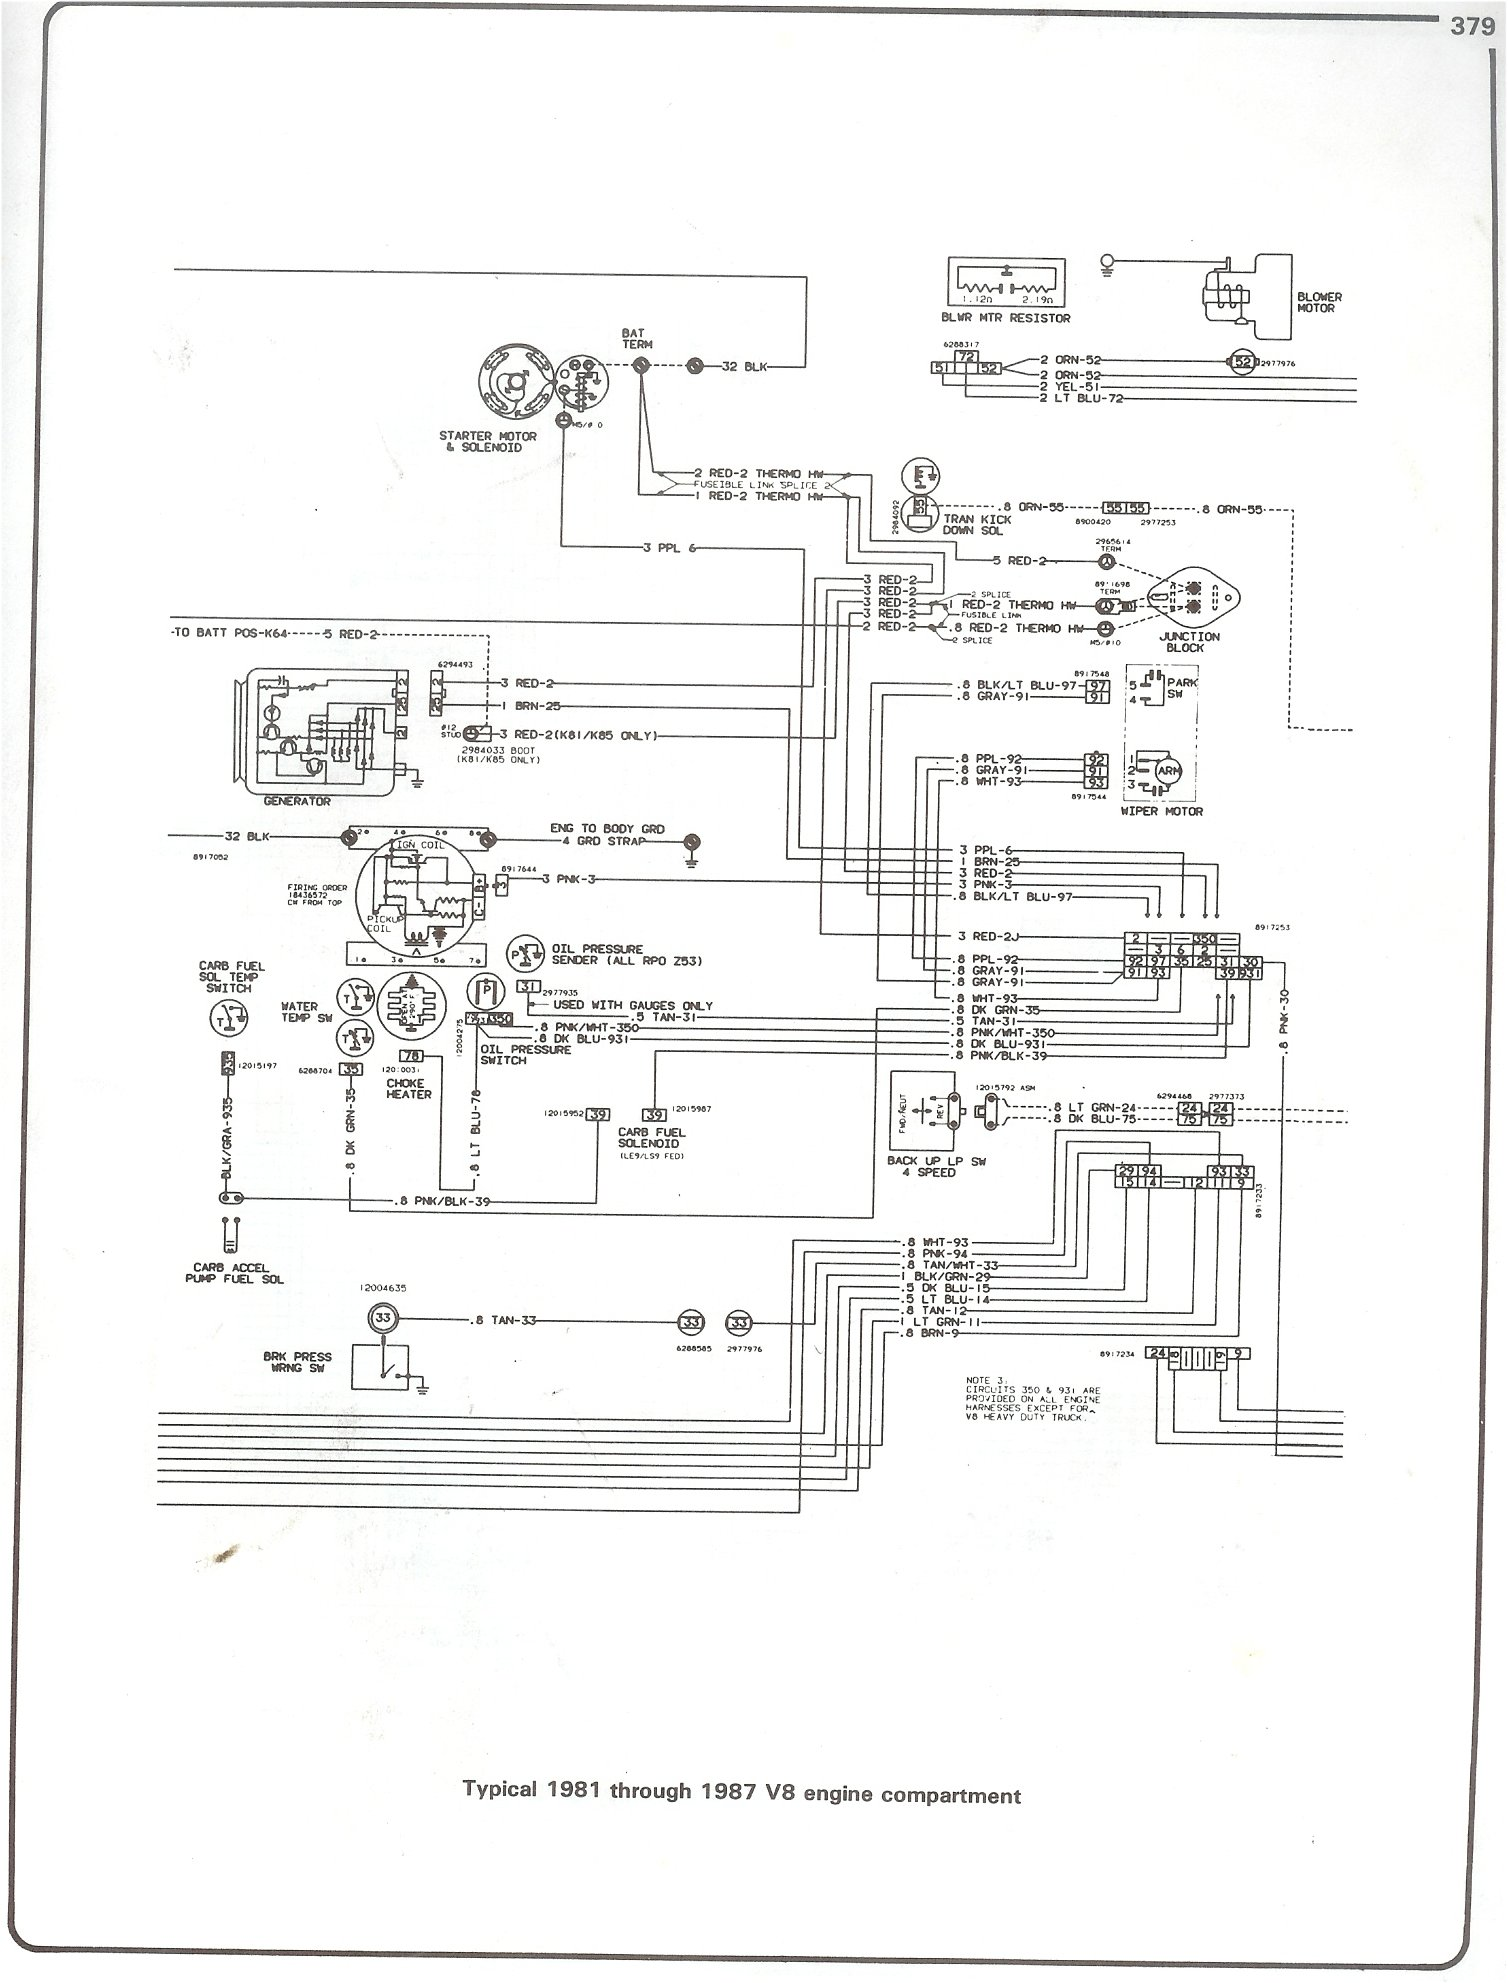 1987 Dodge Pickup Wiring Schematic Reinvent Your Diagram Ram Ignition Diagrams 1981 C10 Harness Detailed Schematics Rh Highcliffemedicalcentre Com 150 2002 Tundra 47